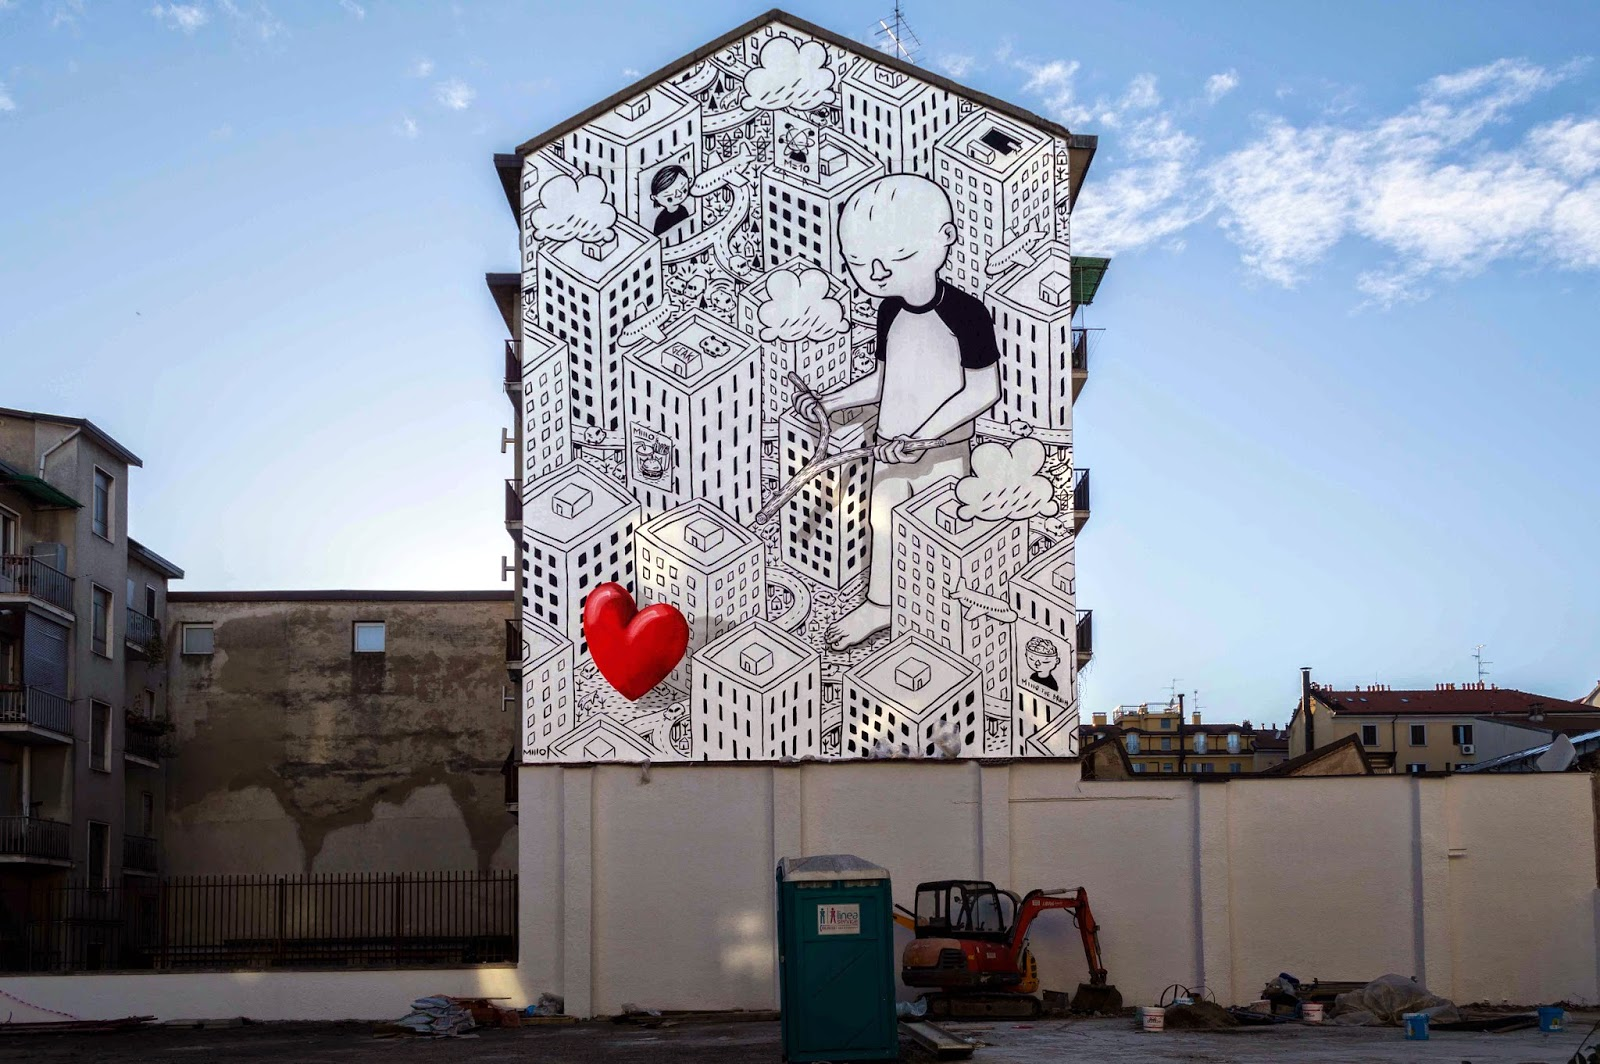 Constantly busy on the streets of Italy, Millo has now landed in planet Milan where he just finished working on yet another massive building.